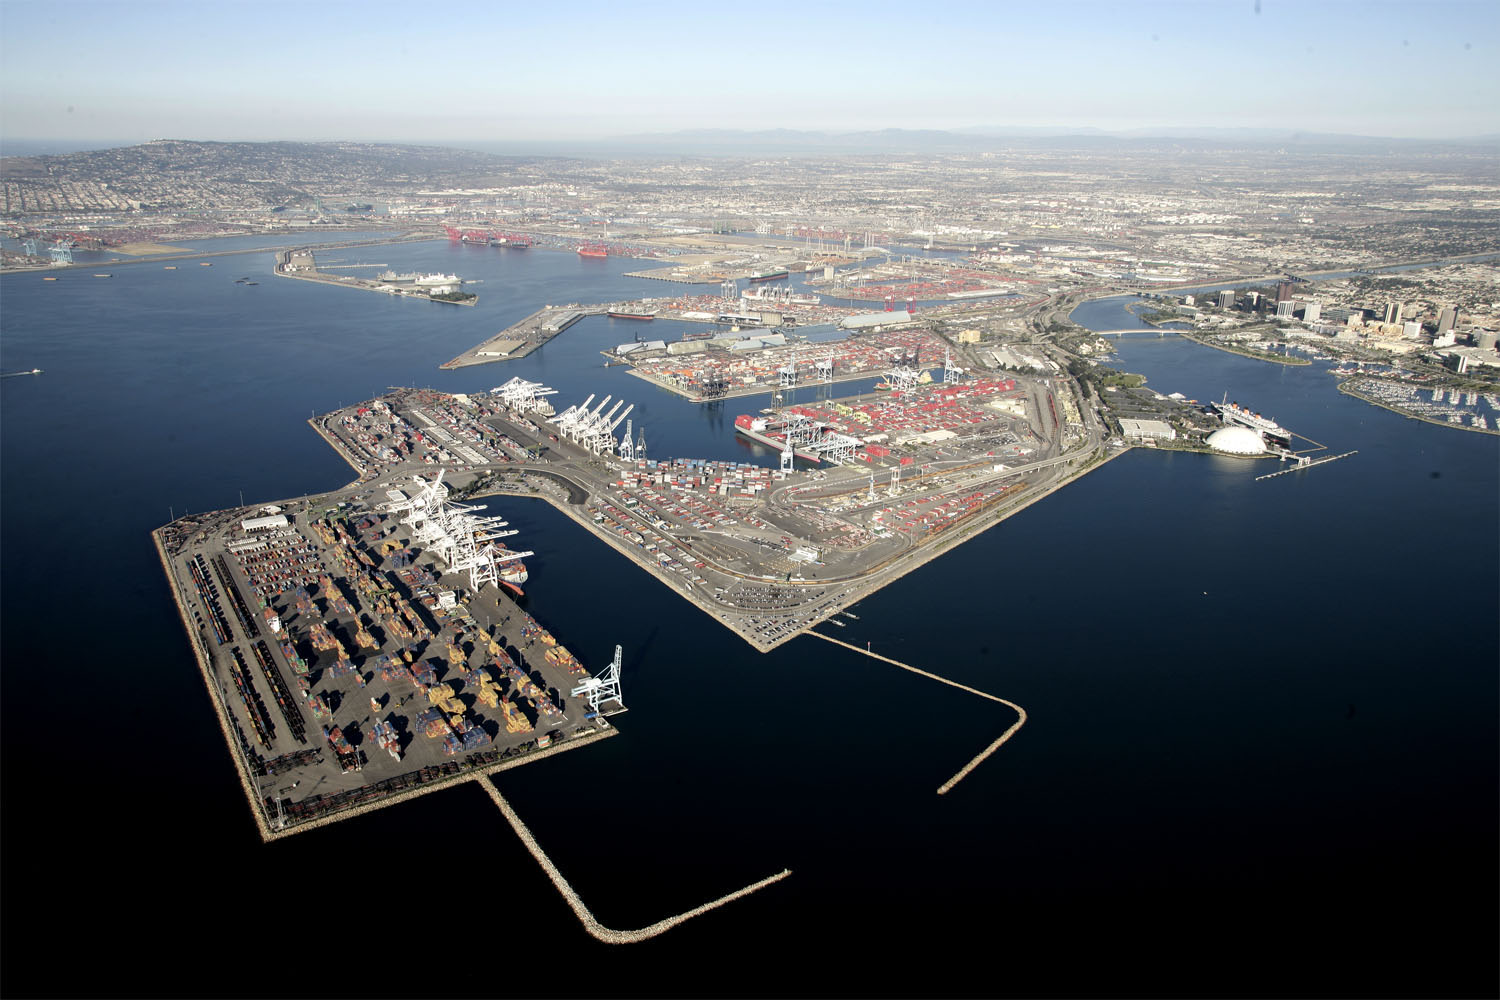 2020 Committee's merger proposal turned away by Port of Long Beach